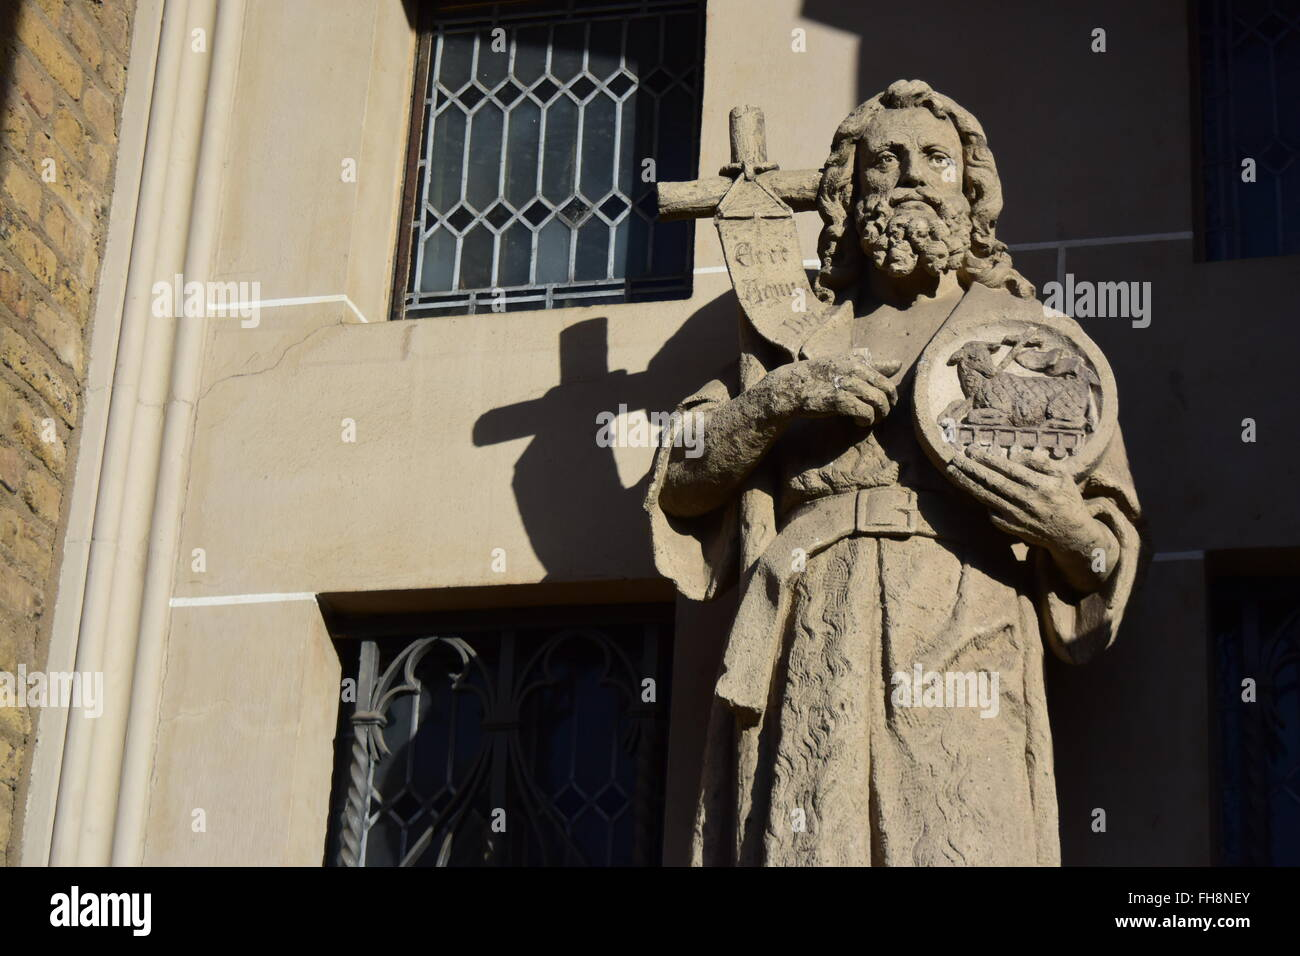 sculpture of a holy man with cross and paschal lamb - Stock Image